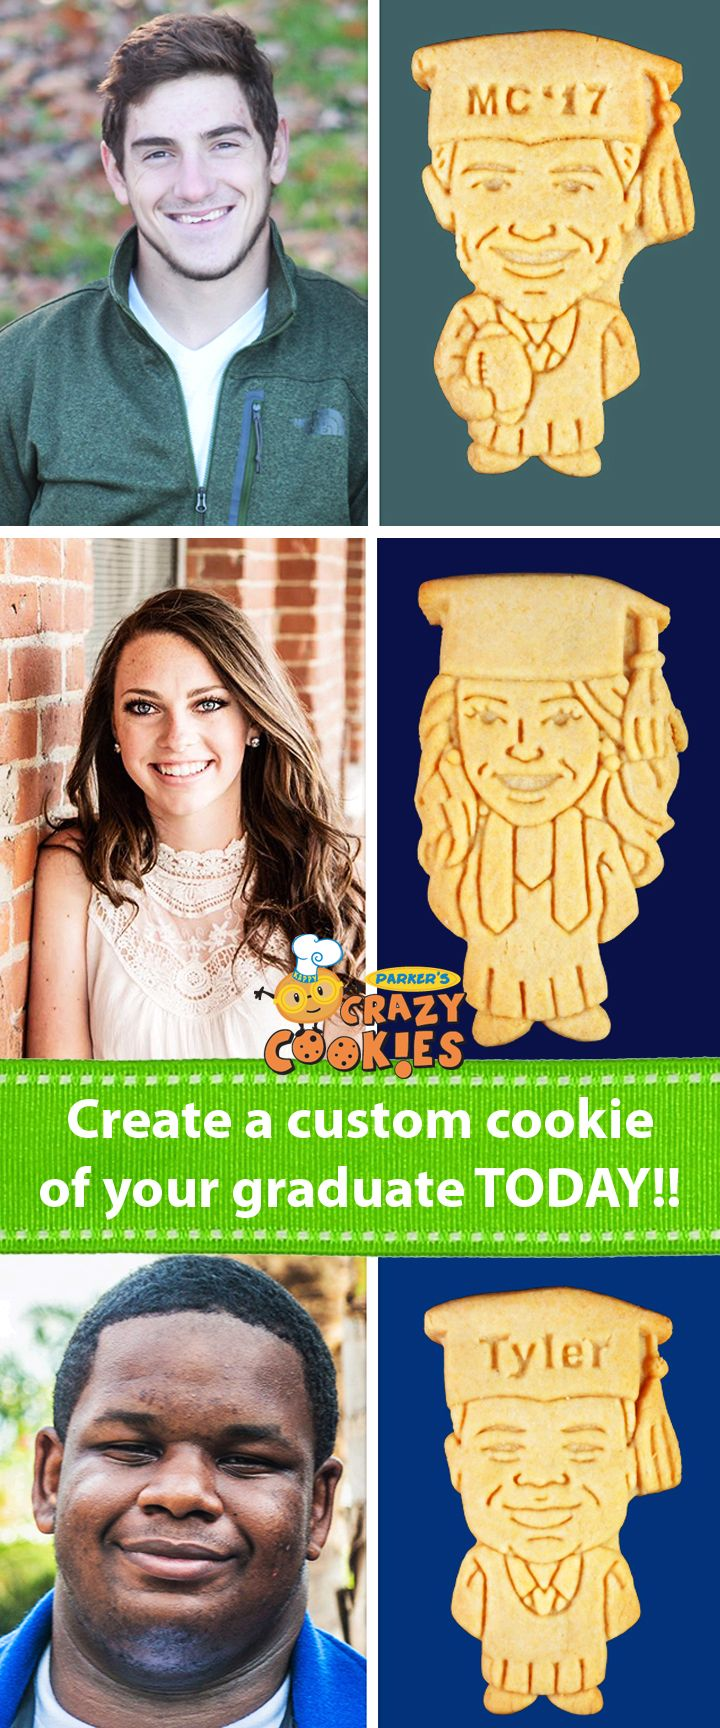 """Fun graduation parties ideas!! Create a personalized cookie of your graduate for their graduation party!! Your guests will go """"Crazy"""" for these crazy cookies. Discover the magic at www.parkerscrazycookies.com. As seen on the Food Network and Today Show!"""